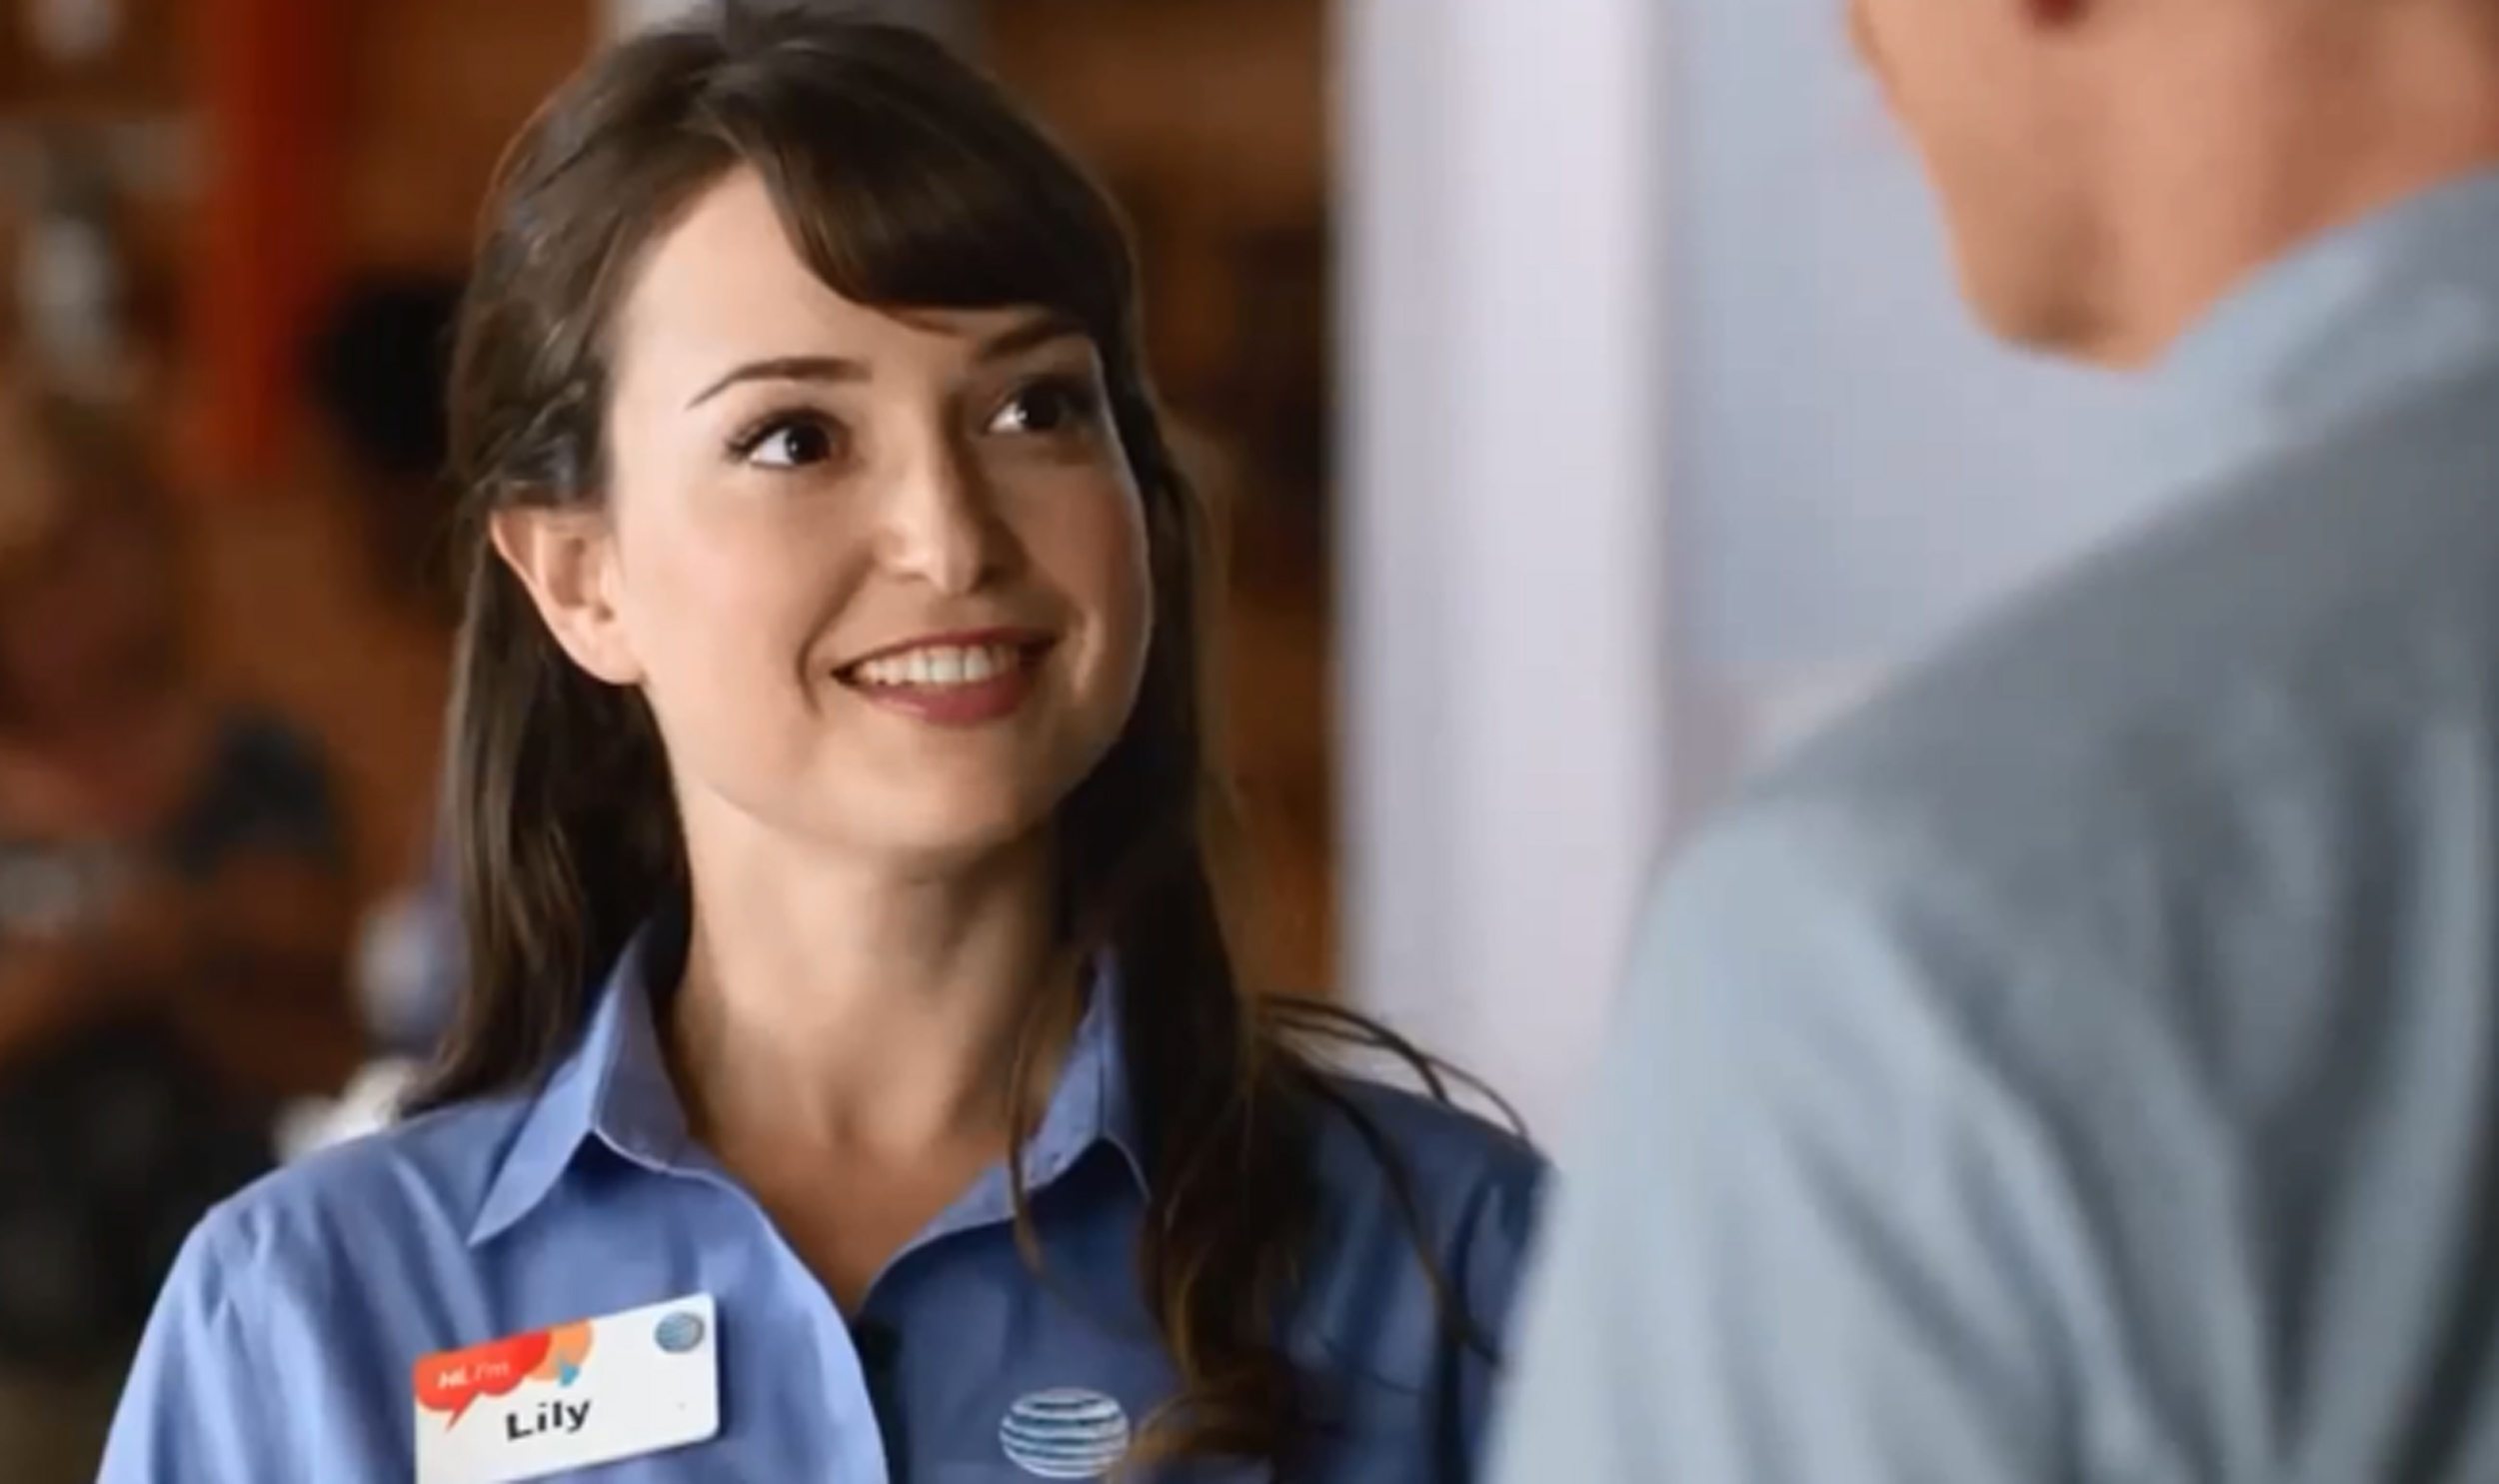 Milana Vayntrub Lily From Those At T Ads Has A Message For Syrian Refugees